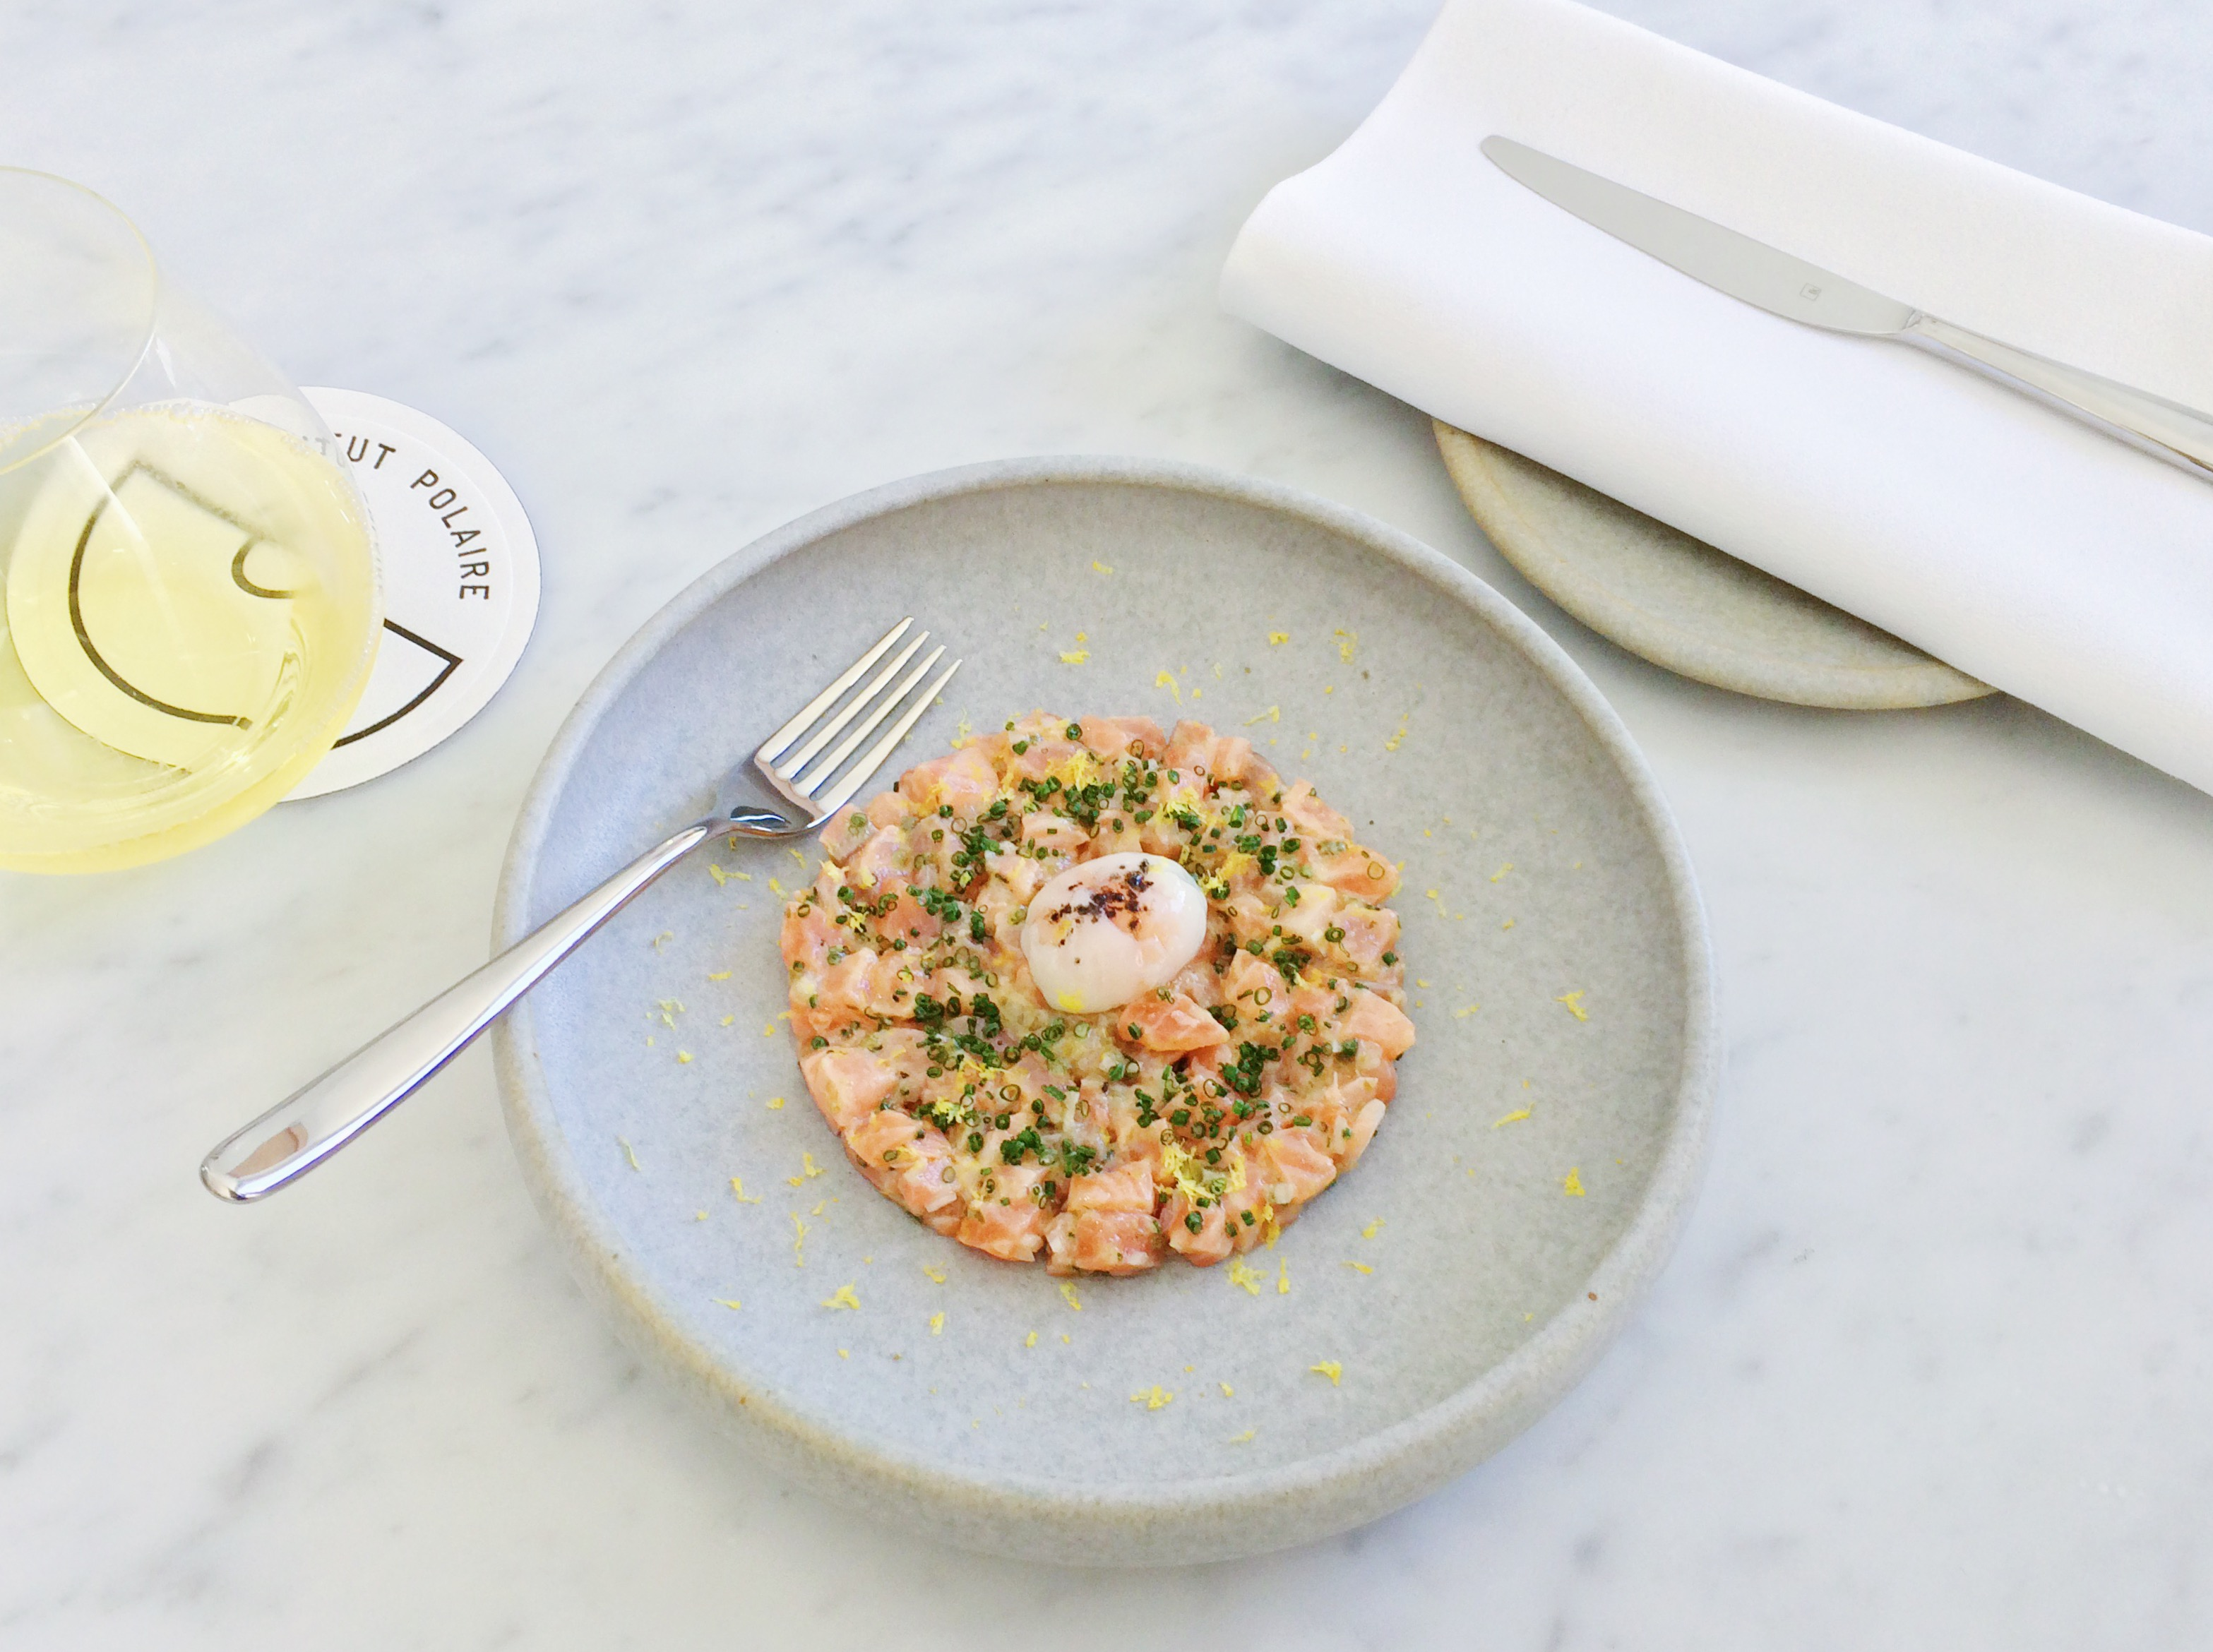 Institut Polaire Salmon Tartare 65 degree quail egg tasmania food